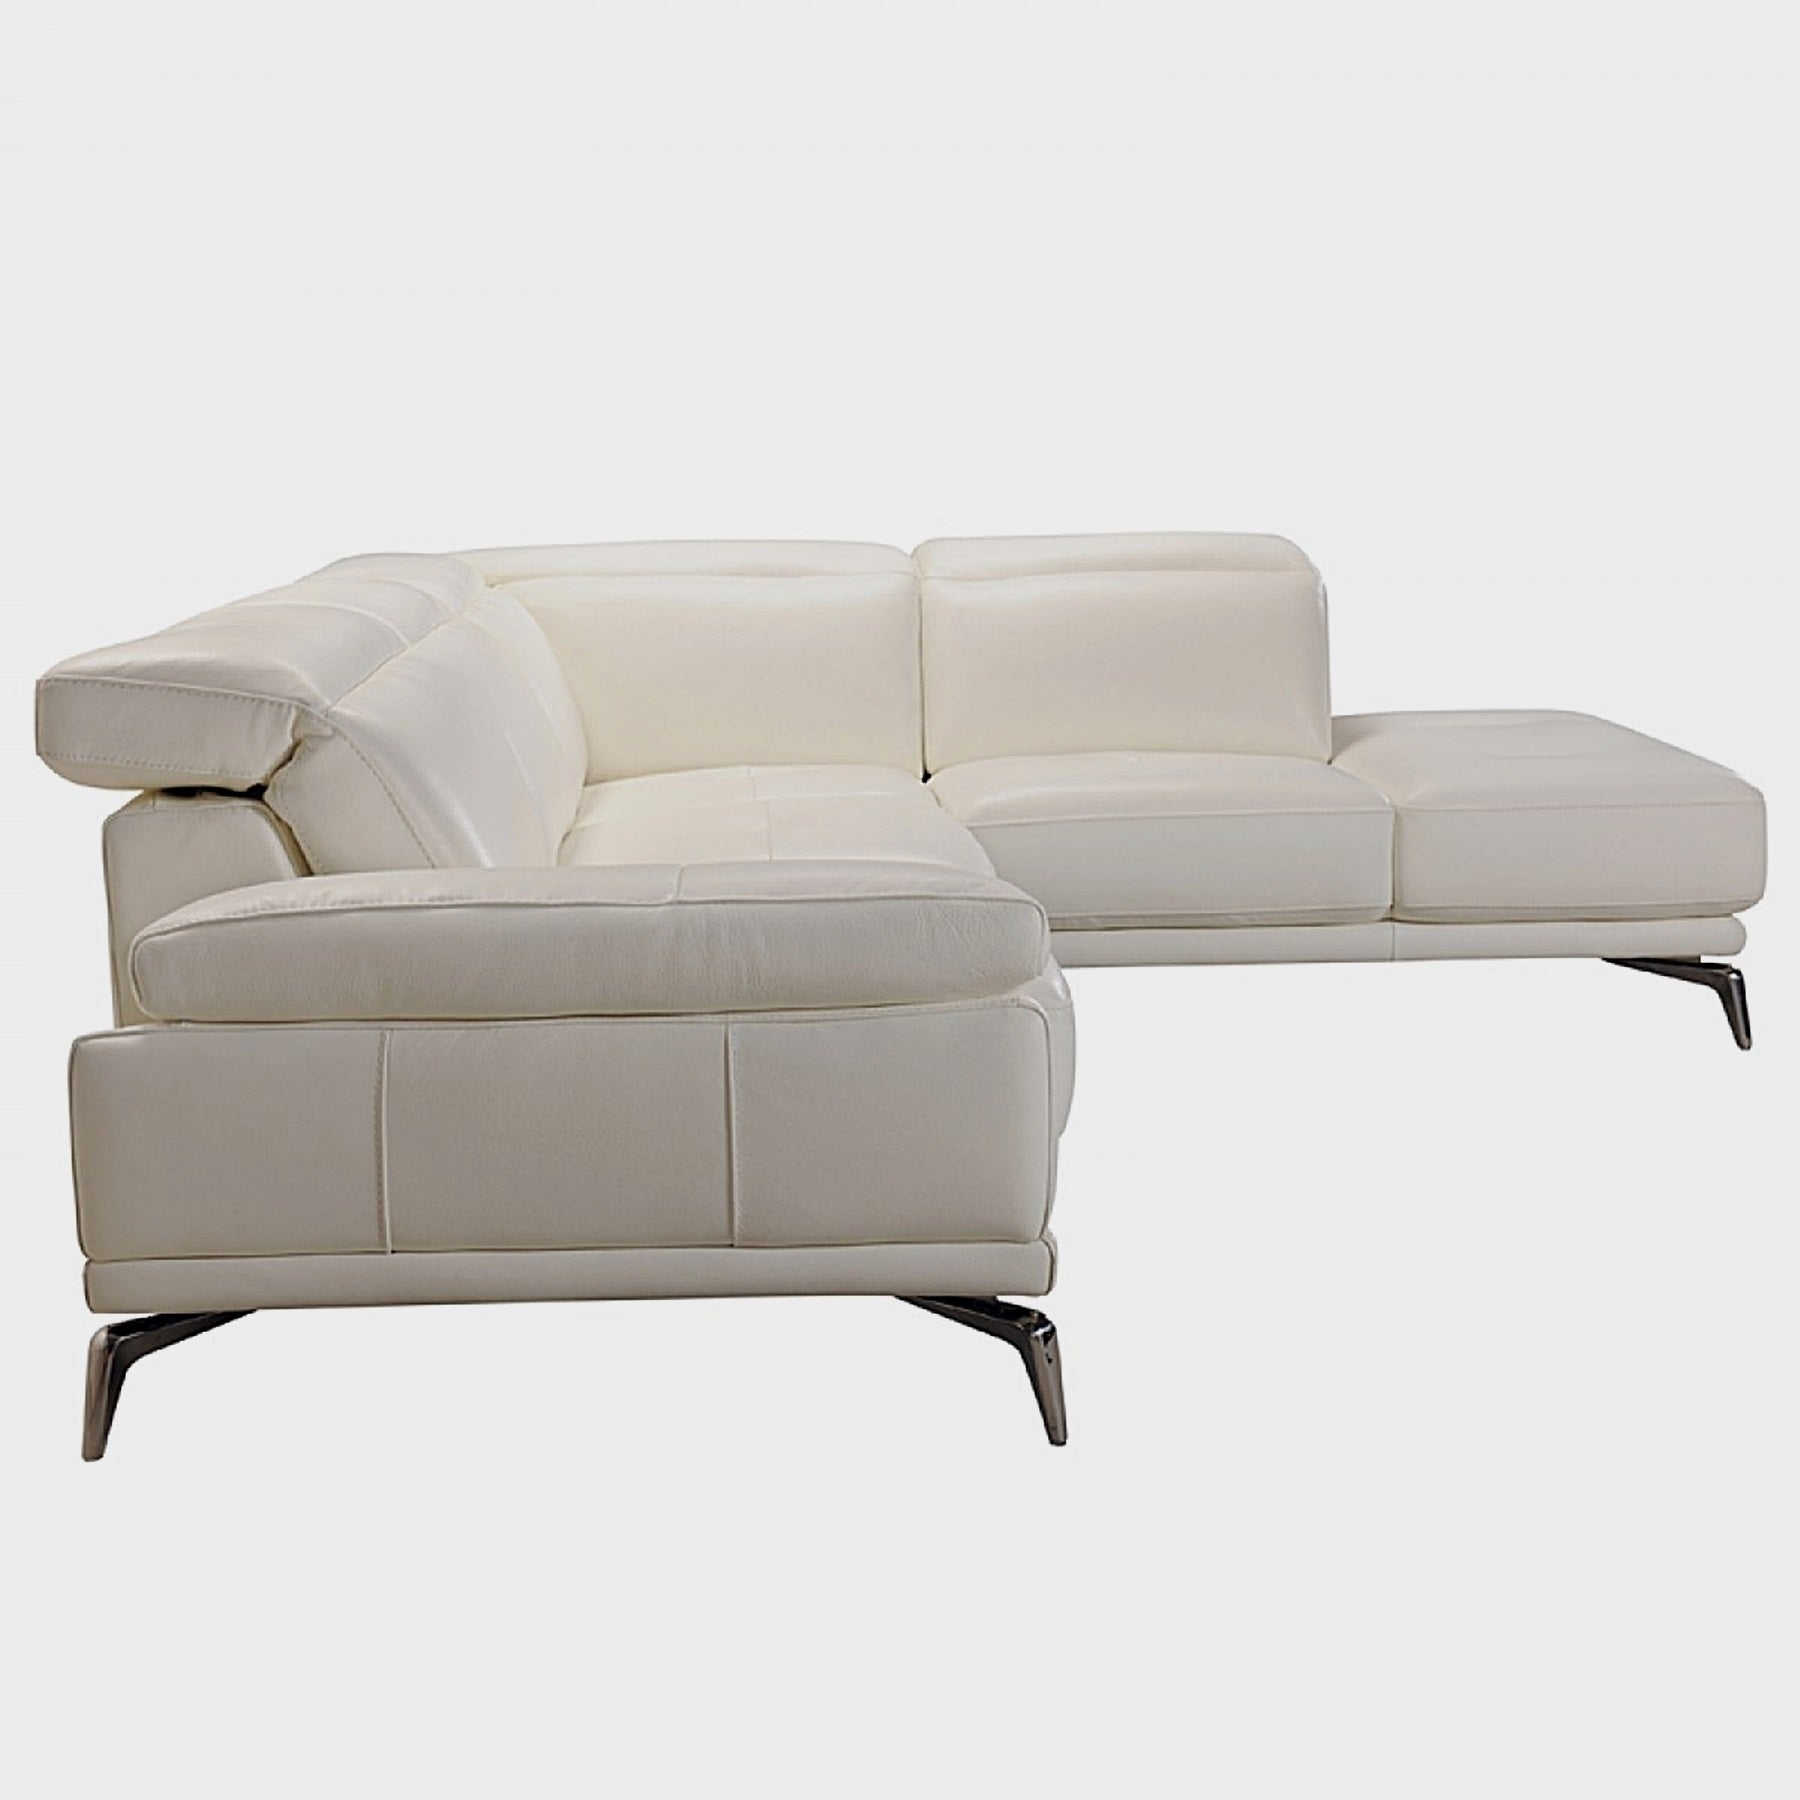 Rallye Modern White Leather L Shaped Sofa Free Shipping Today 17765130